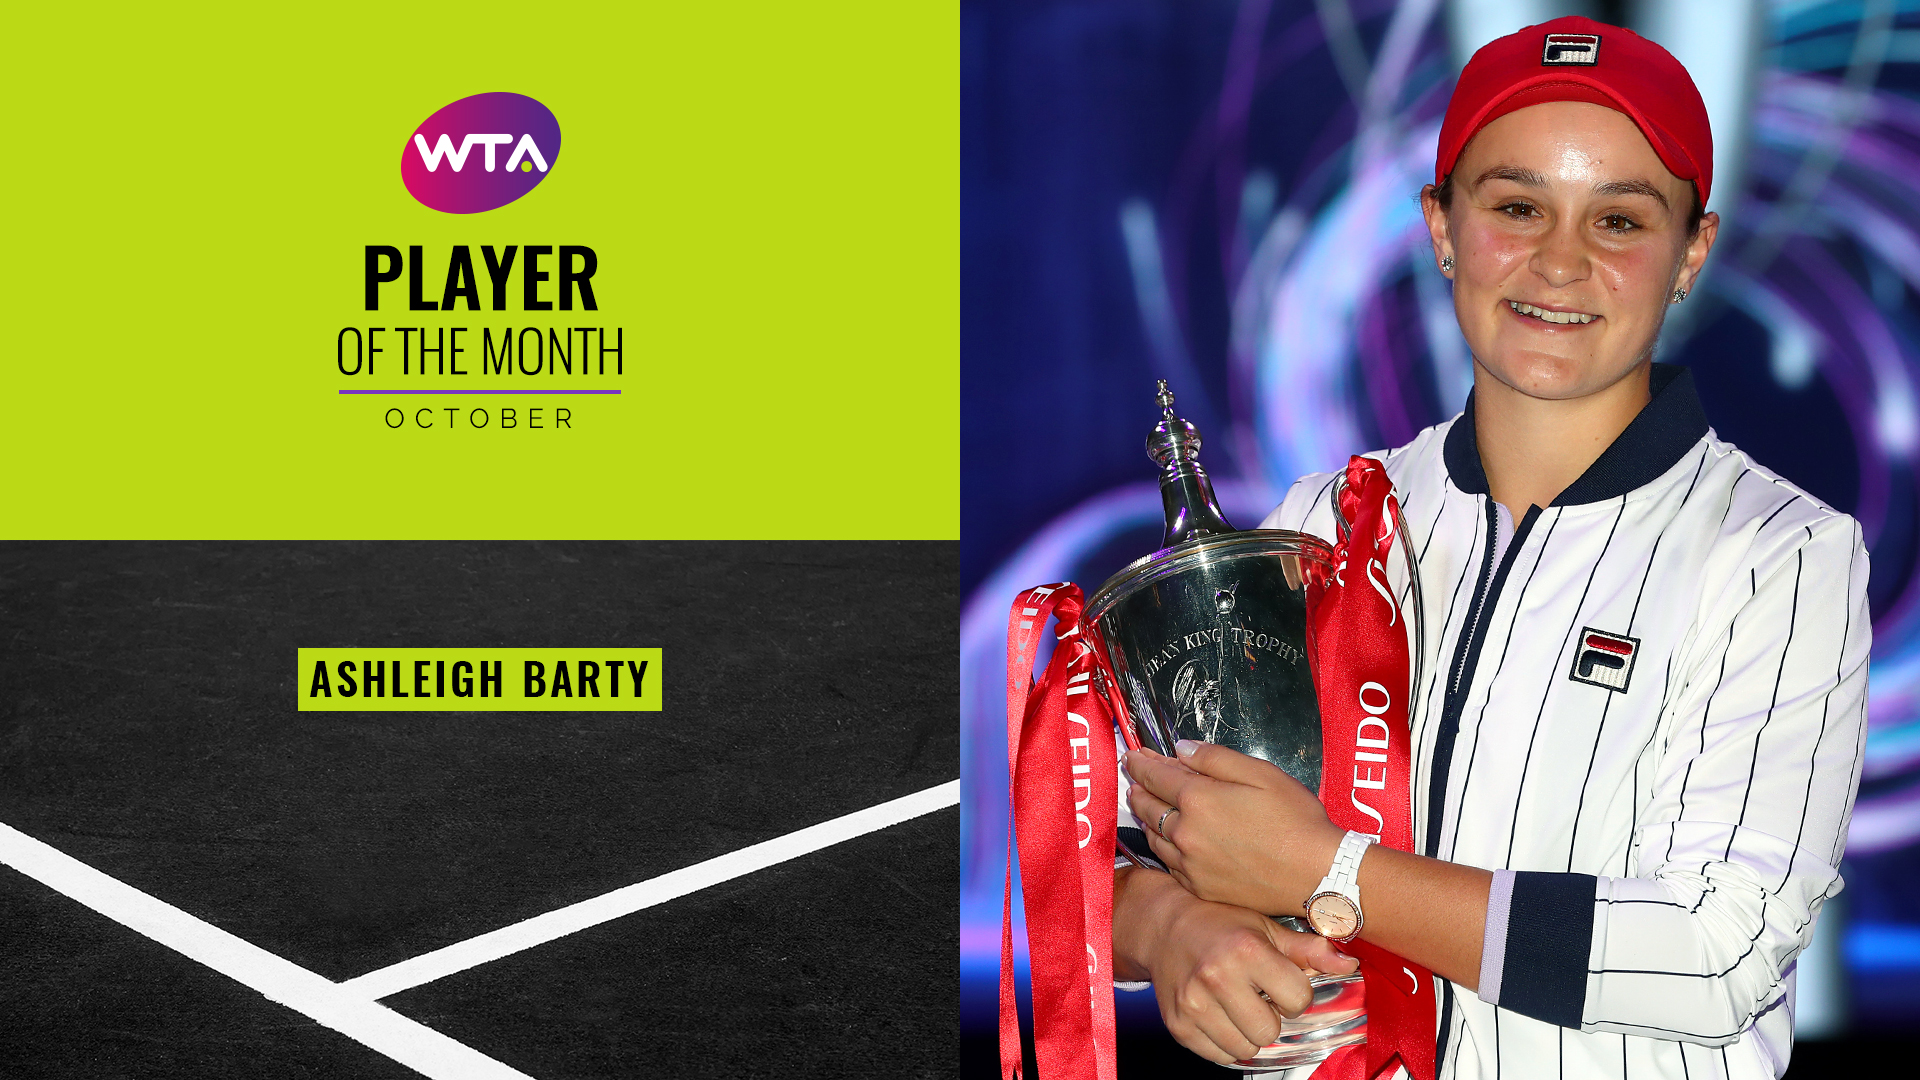 October 2019 Player of the Month: Ashleigh Barty